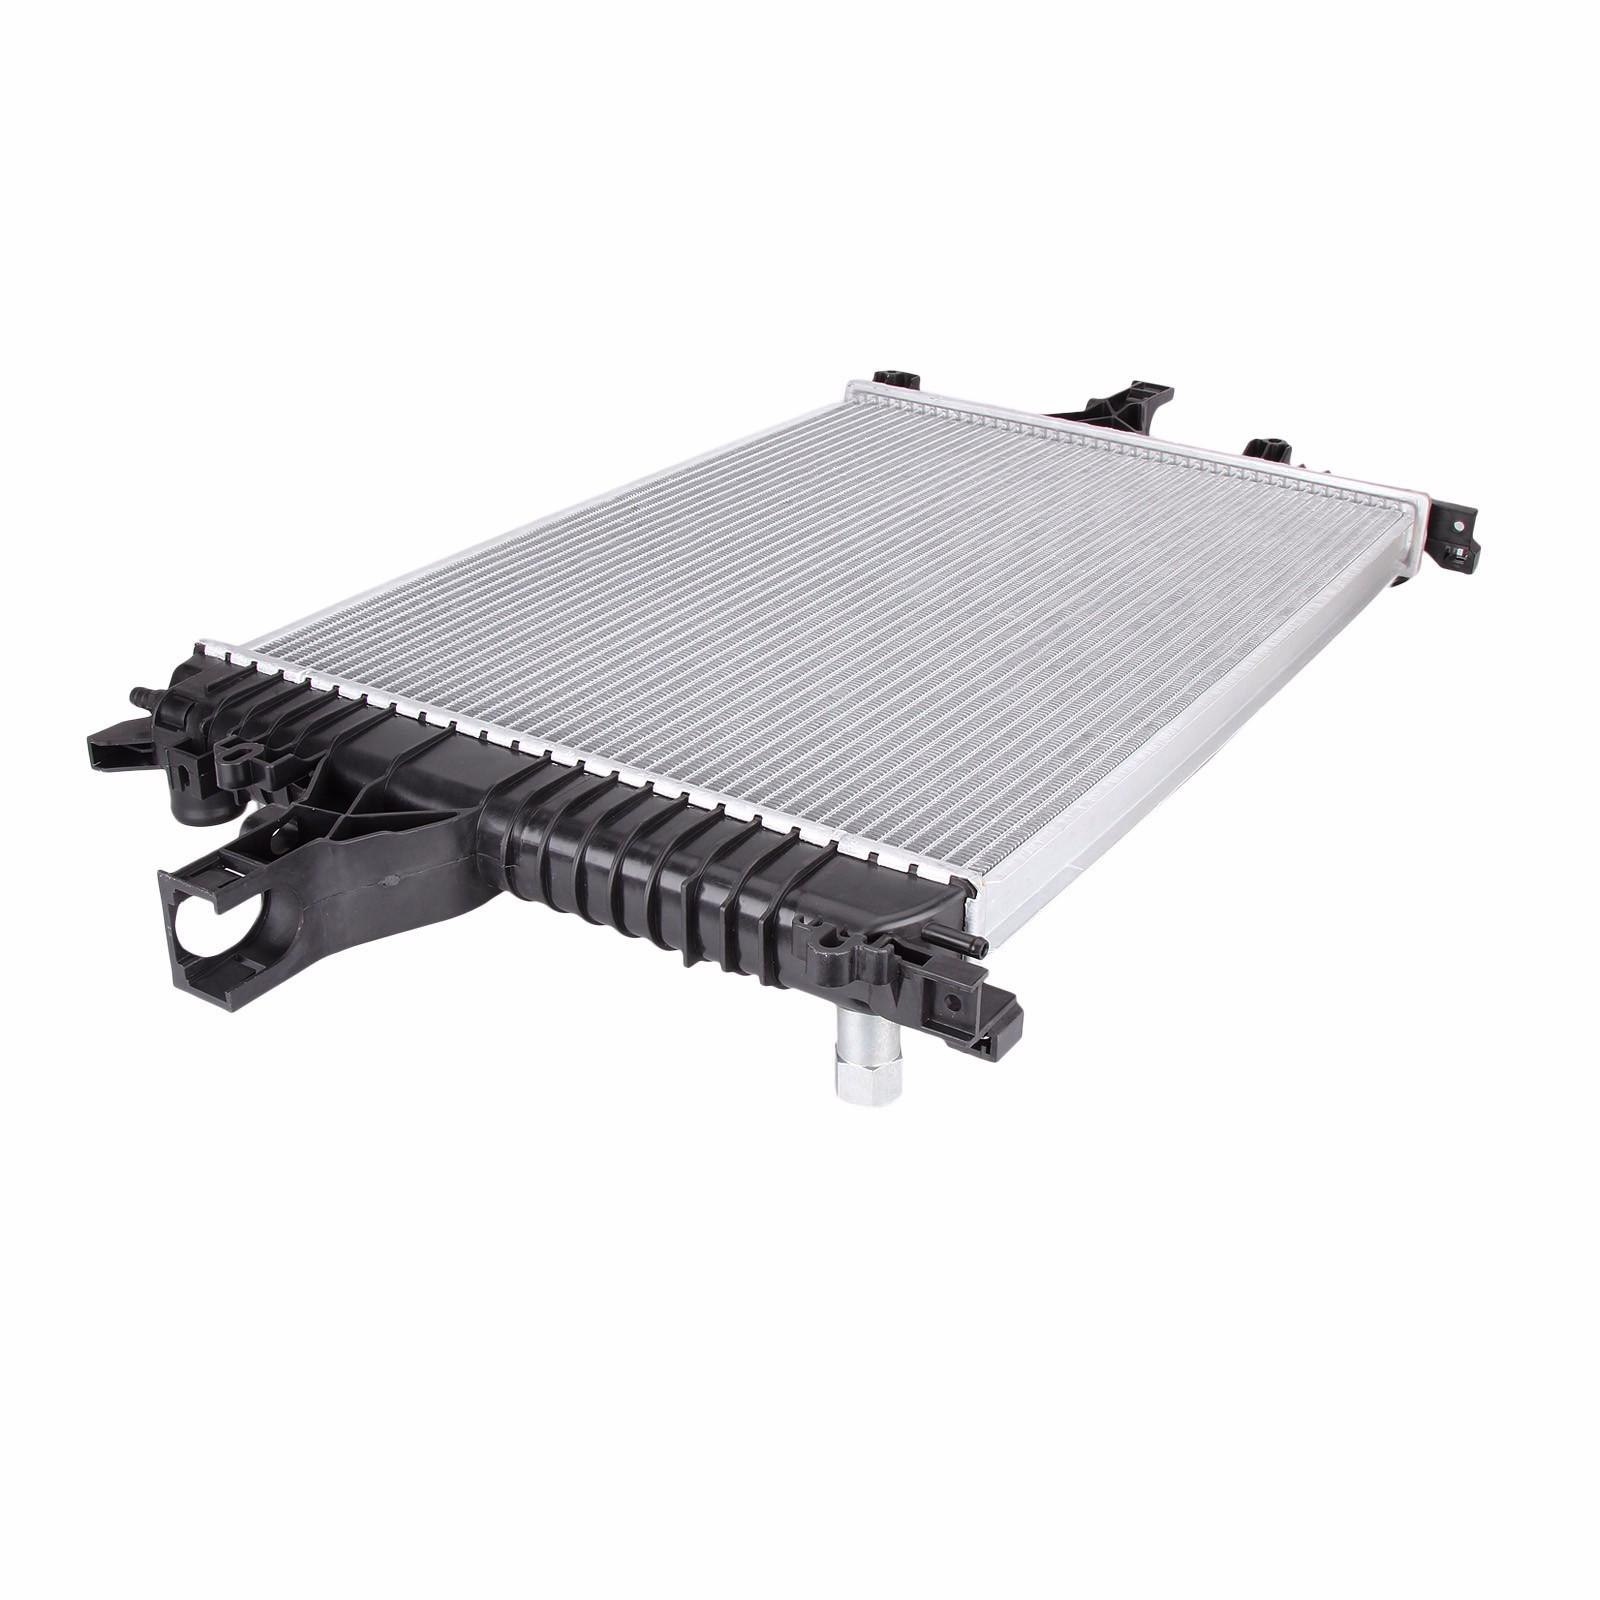 Dromedary-Find Volvo V70 Radiator Replacement Cost Volvo S60 Radiator From Hongdao-1